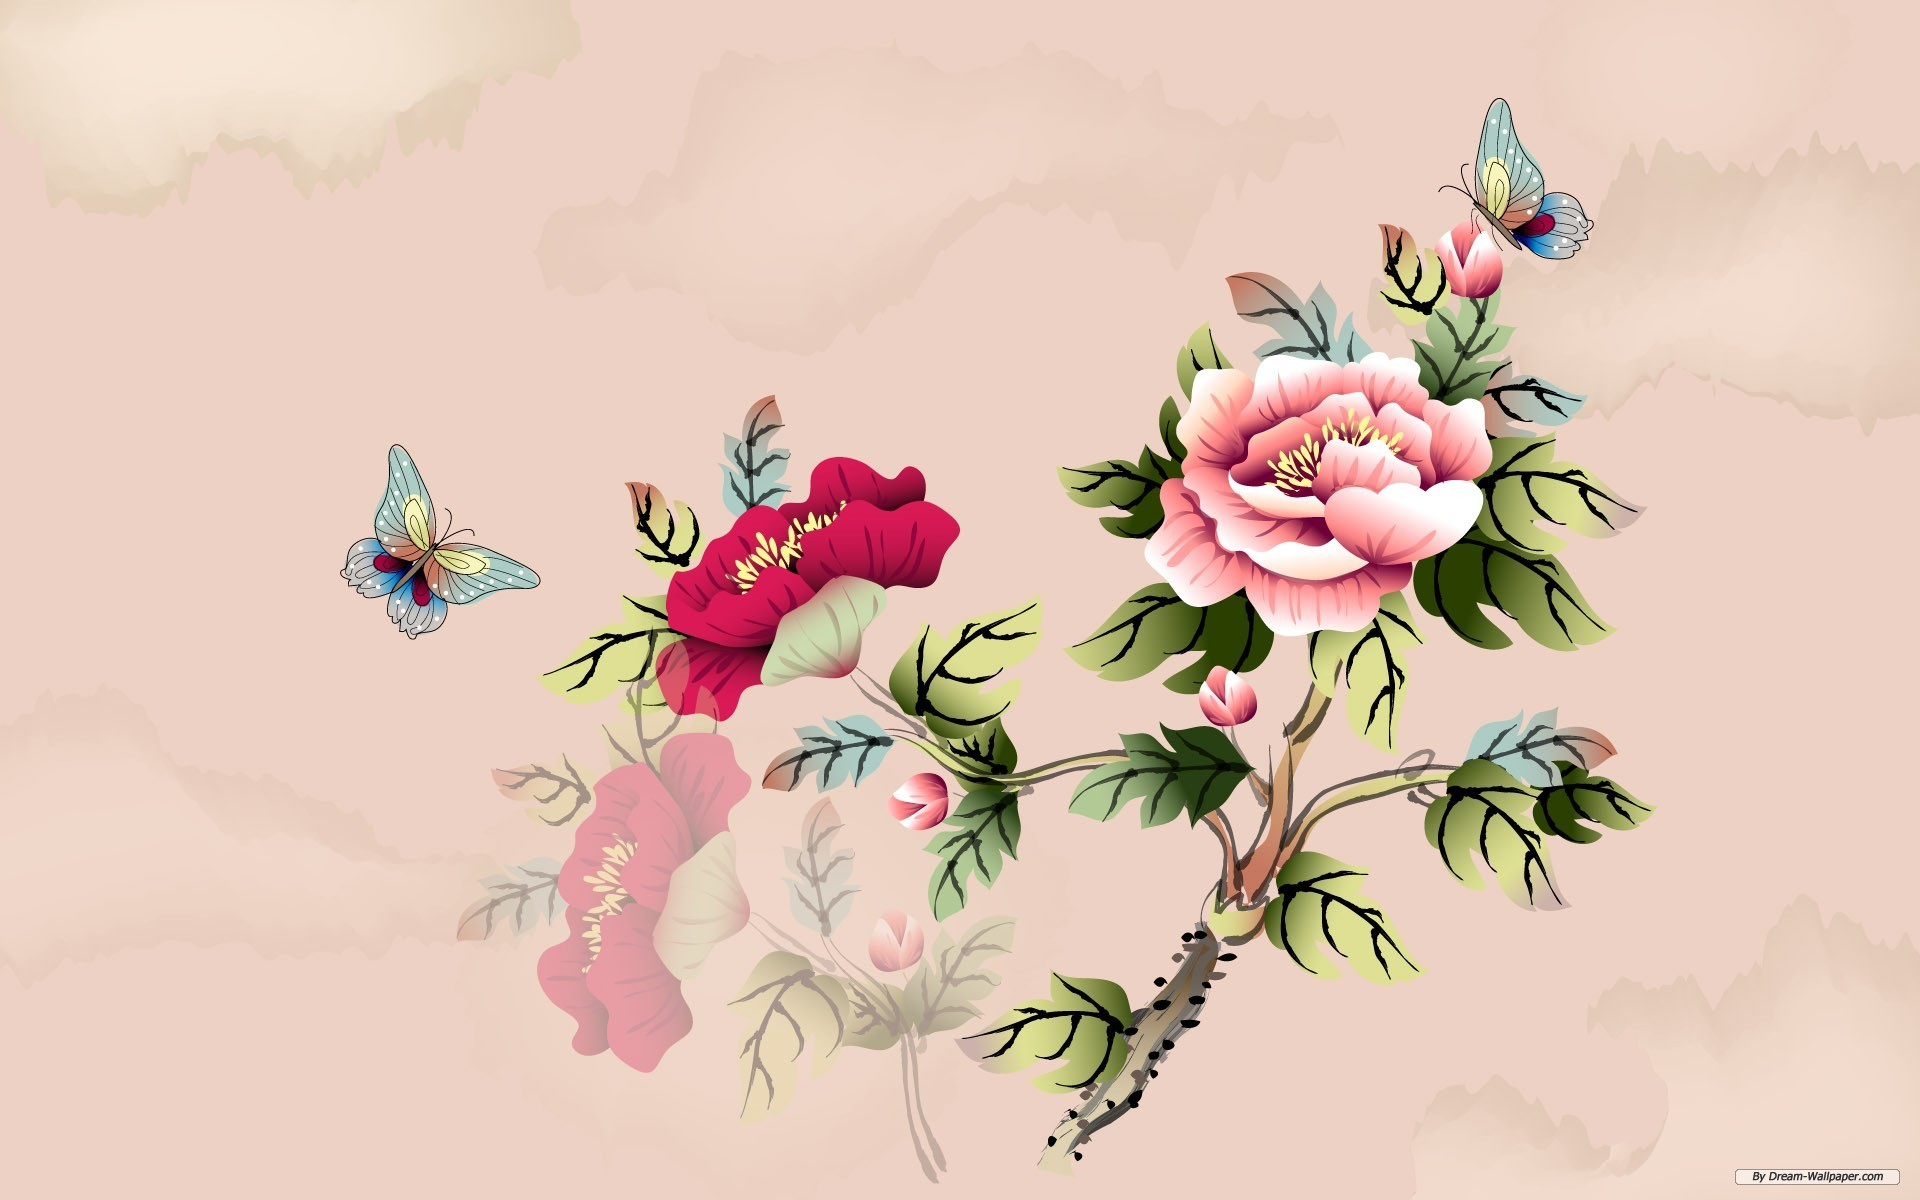 Res: 1920x1200, Free Art wallpaper - Chinese Ink Painting 2 wallpaper -  wallpaper  - Index 21